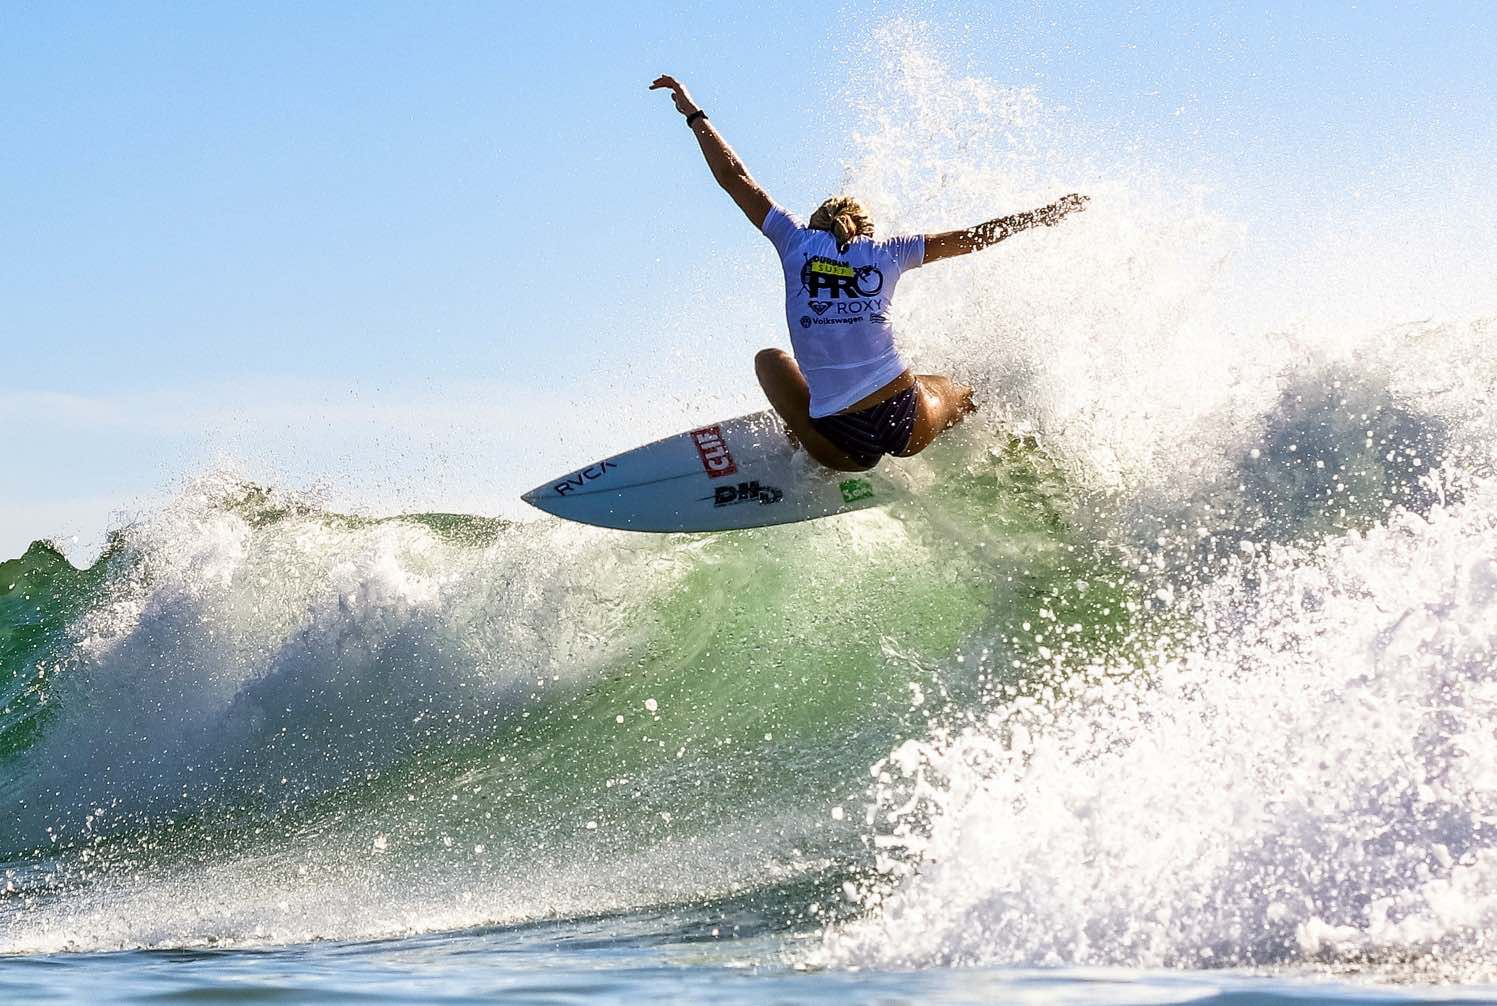 Zoe McDougall surfing her way to victory at the Corona Durban Surf Pro